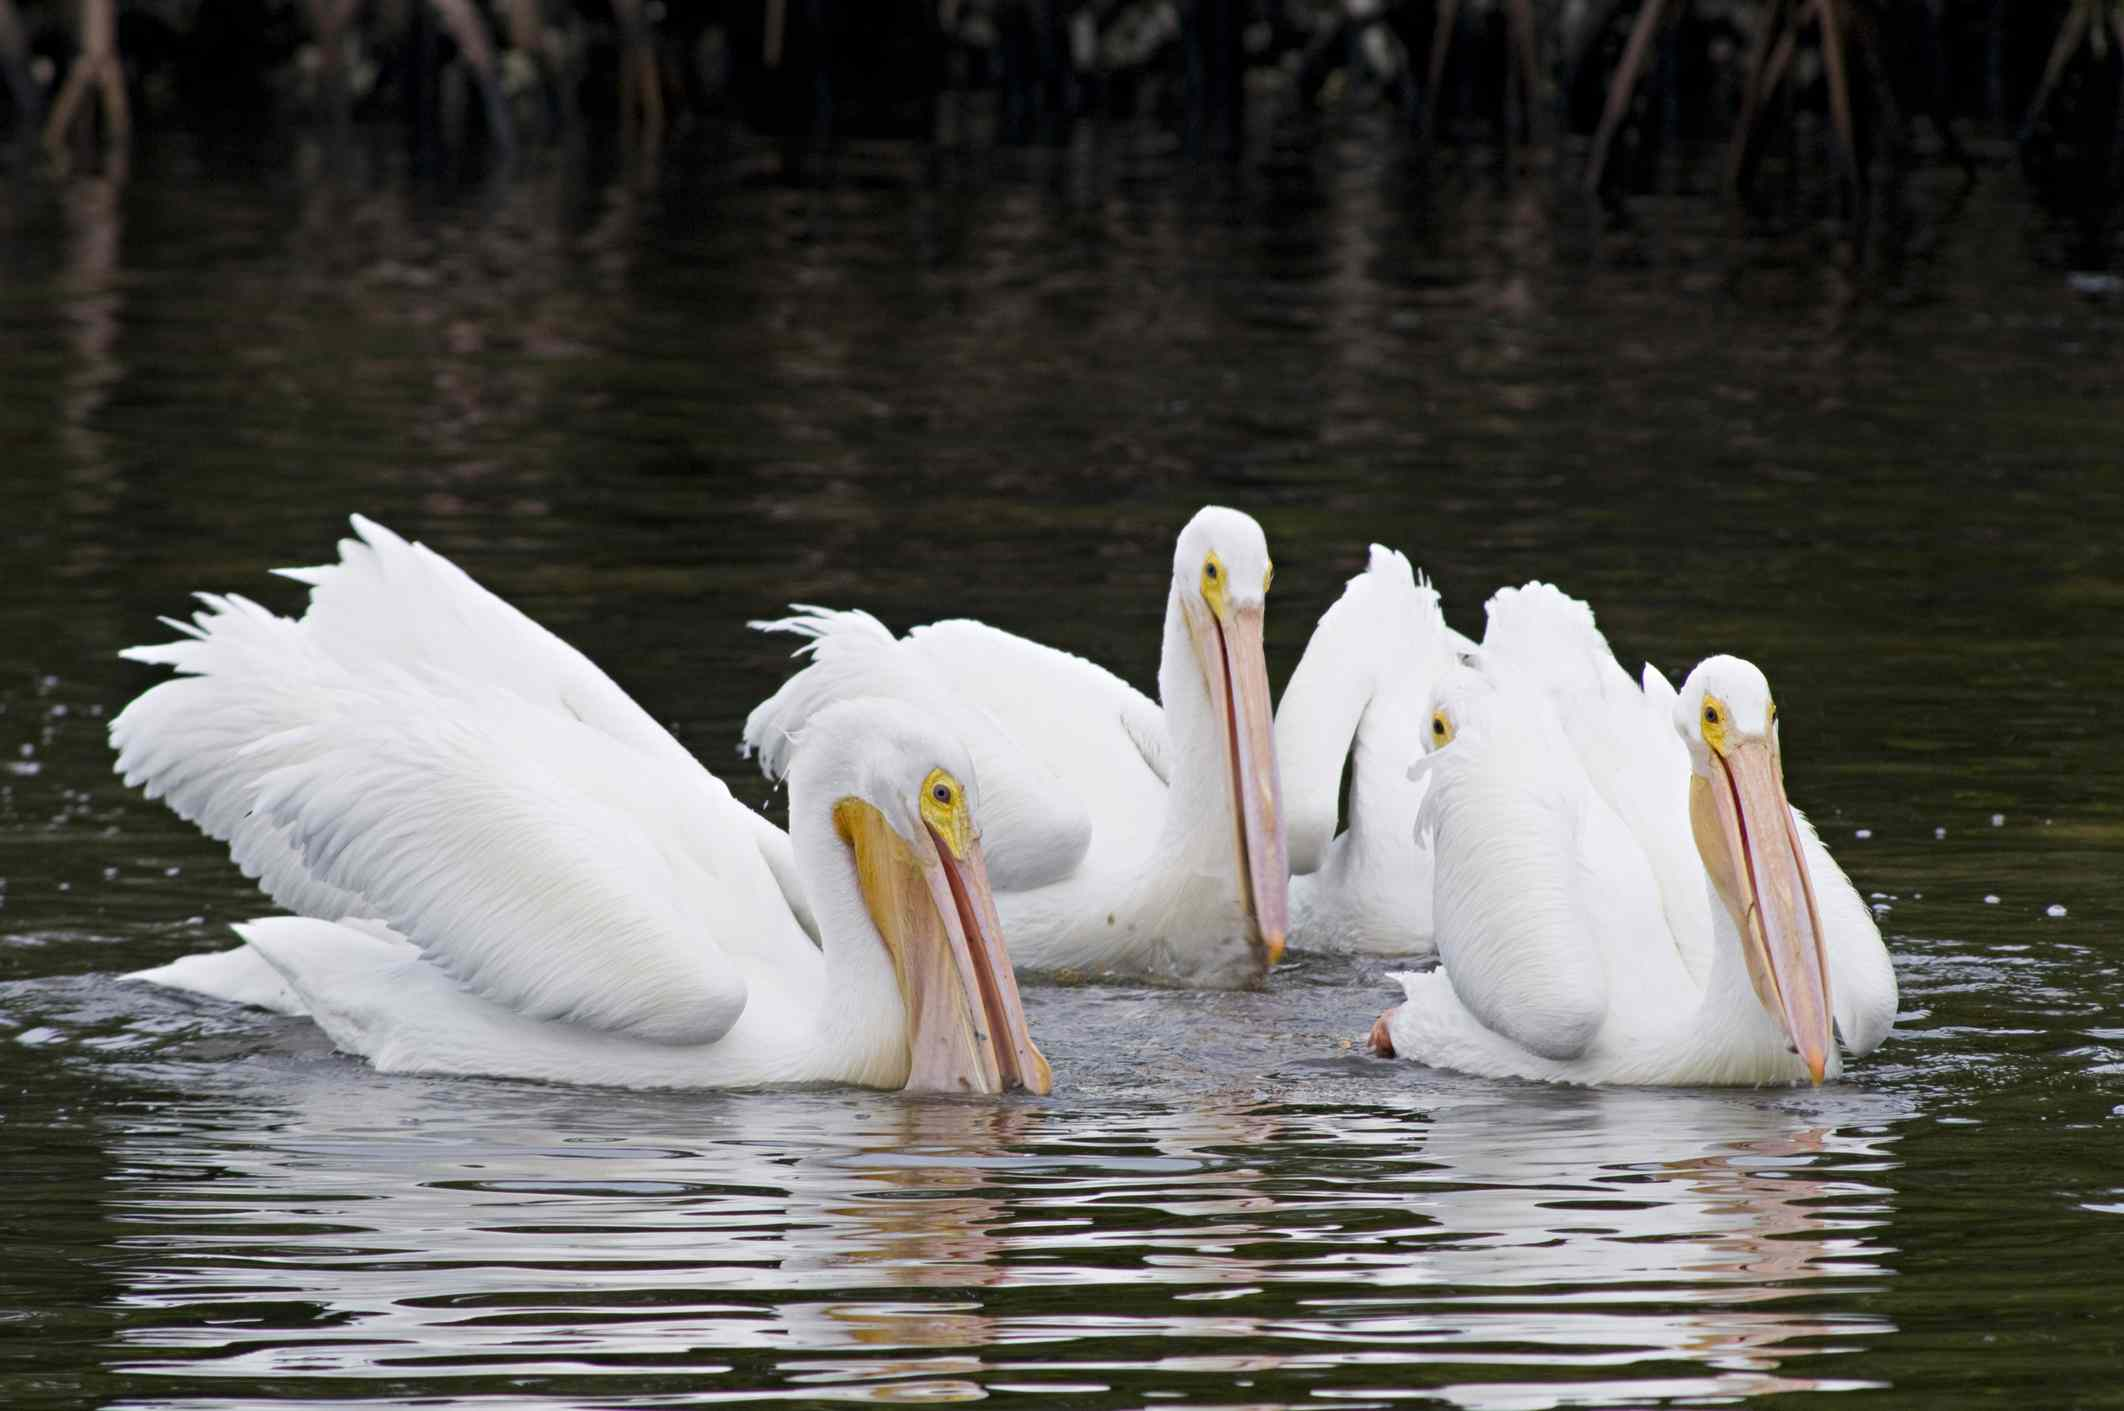 Pelicans eating while floating on top of water next to a mangrove.